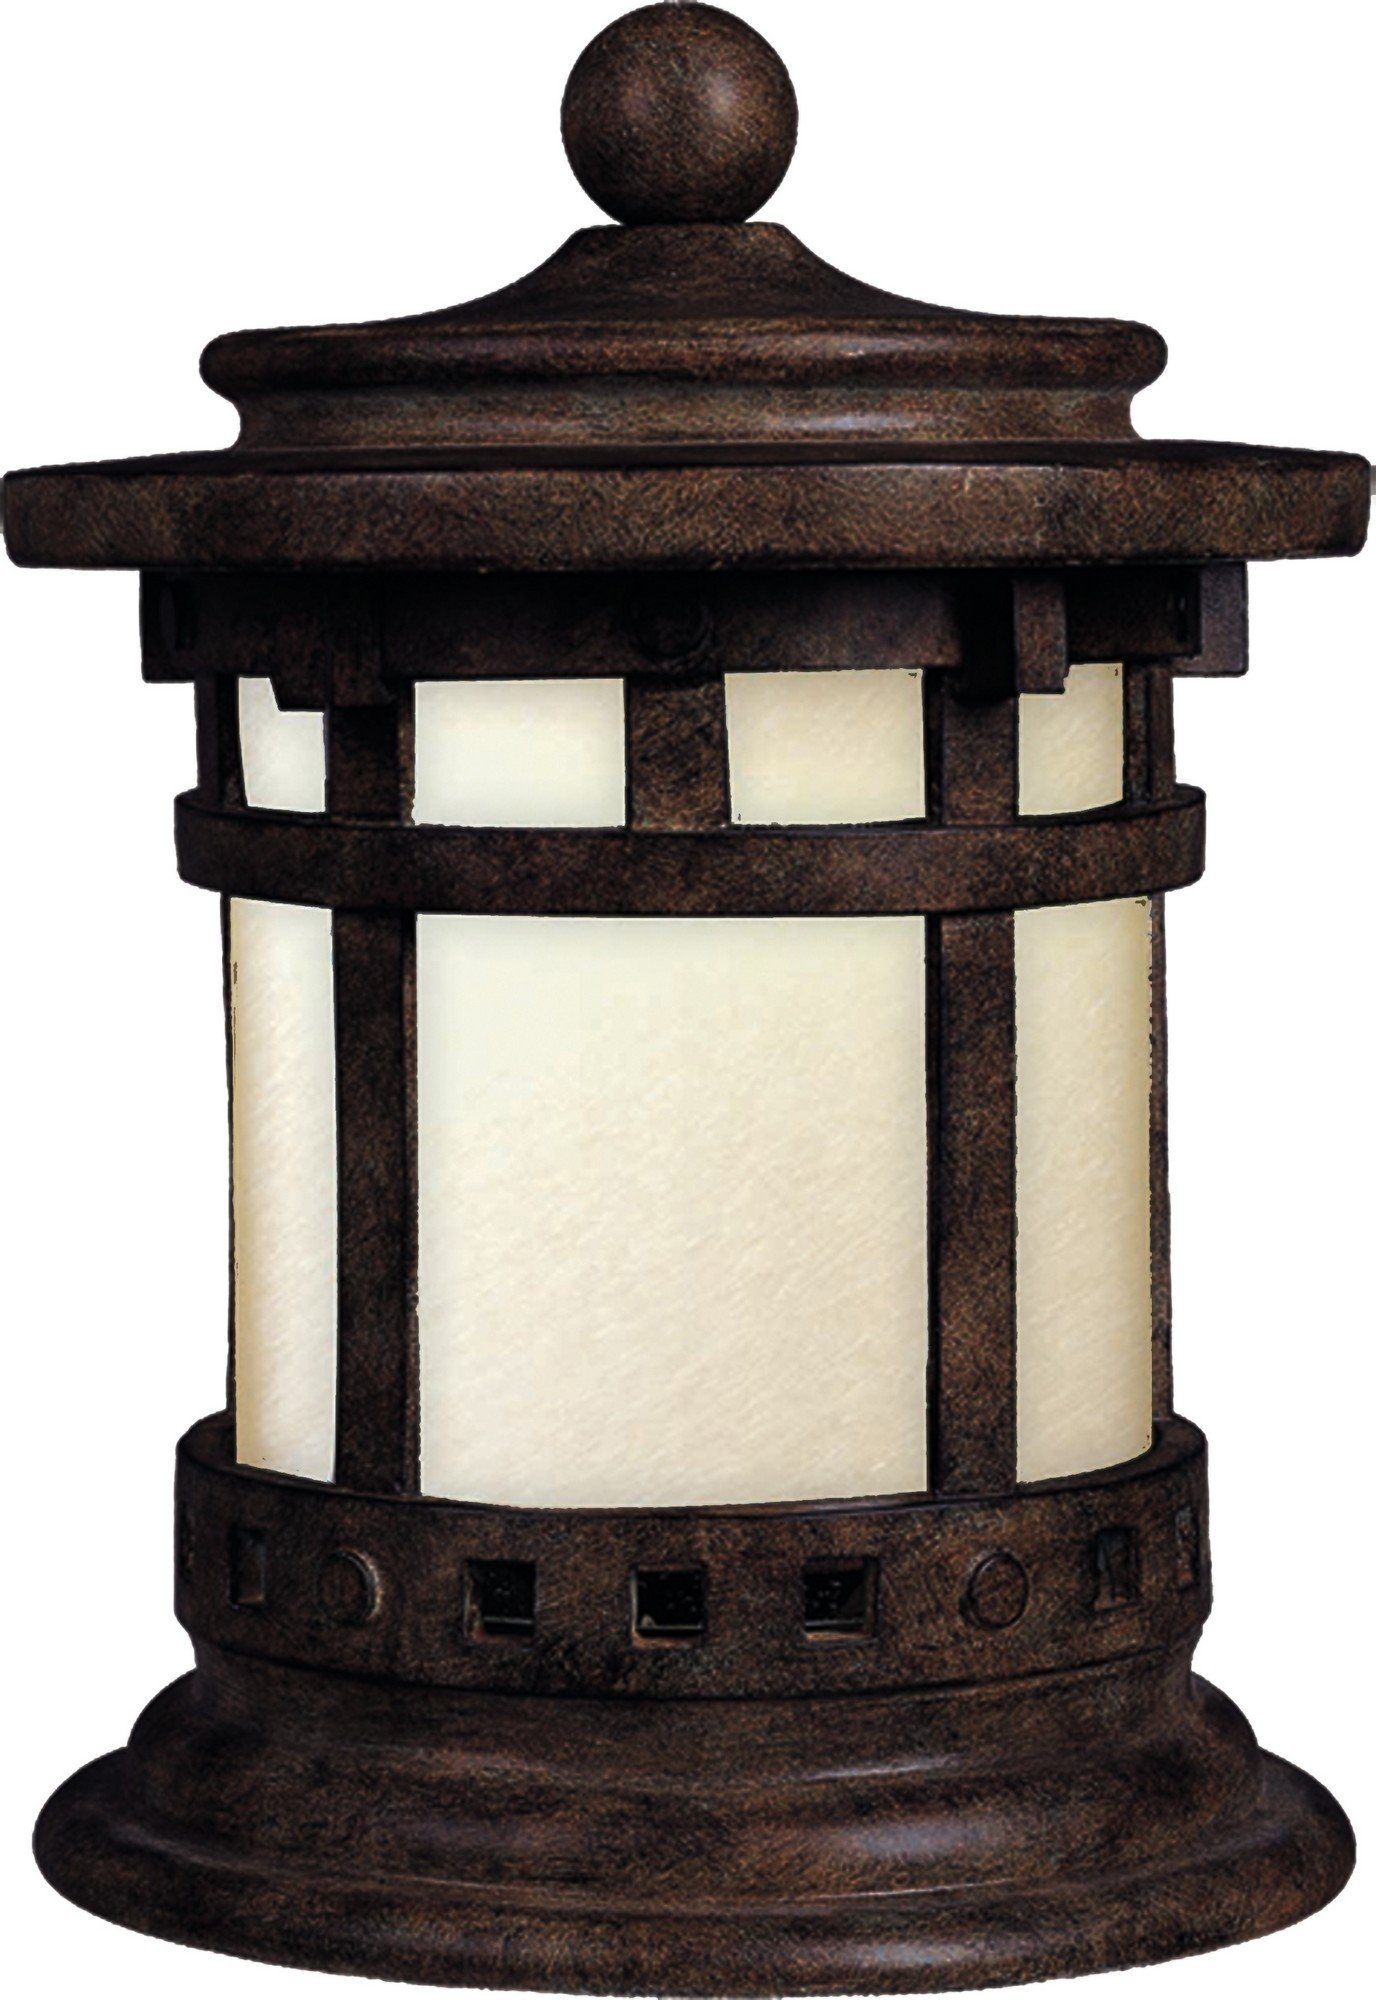 Maxim 85032MOSE Santa Barbara EE 1-Light Outdoor Deck Lantern, Sienna Finish, Mocha Glass, GU24 Fluorescent Fluorescent Bulb , 60W Max., Dry Safety Rating, Standard Dimmable, Glass Shade Material, 1344 Rated Lumens